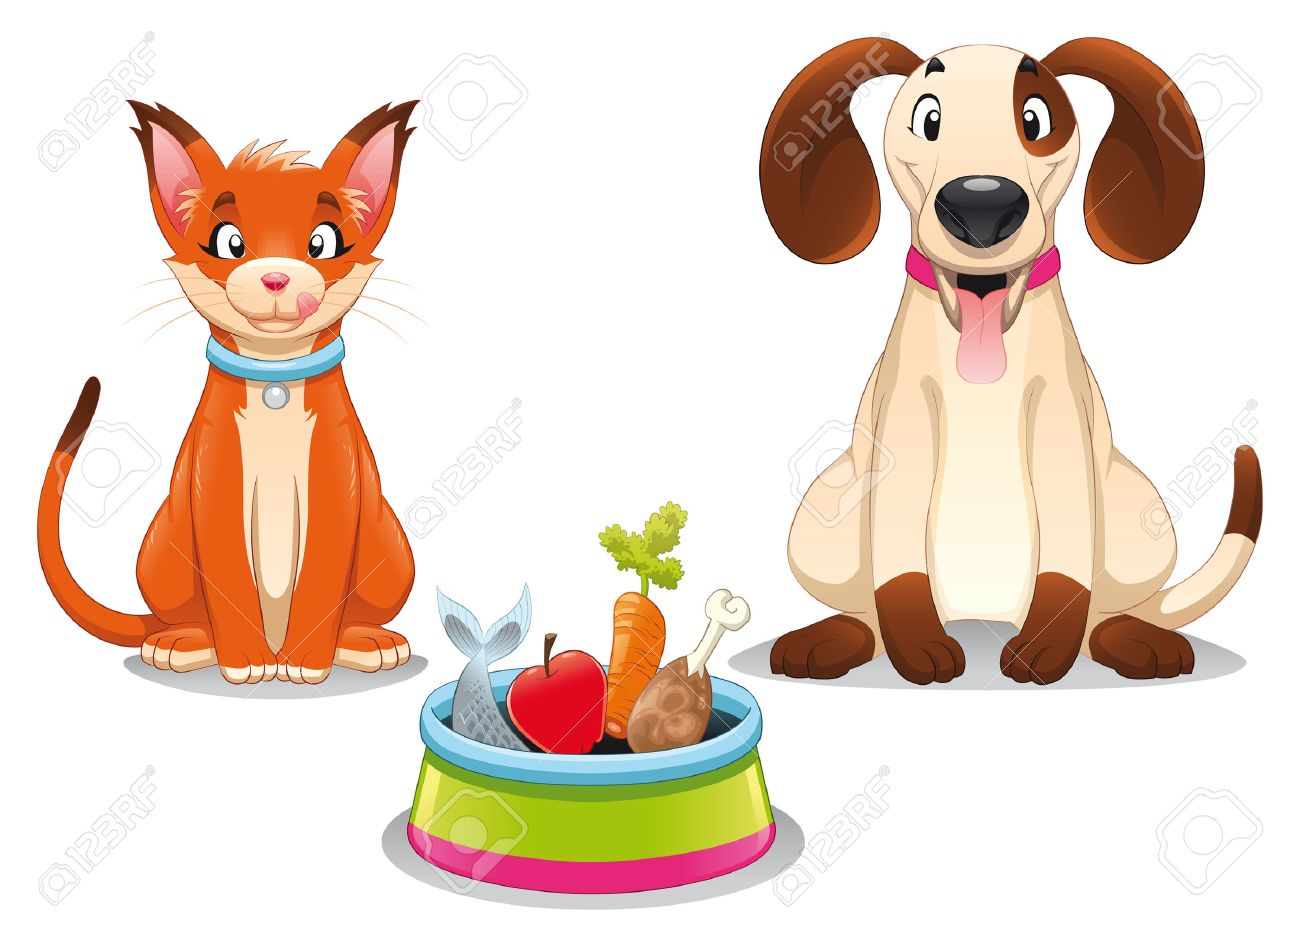 Cat and Dog with food. Funny cartoon and vector scene, isolated objects. Stock Vector - 8707856